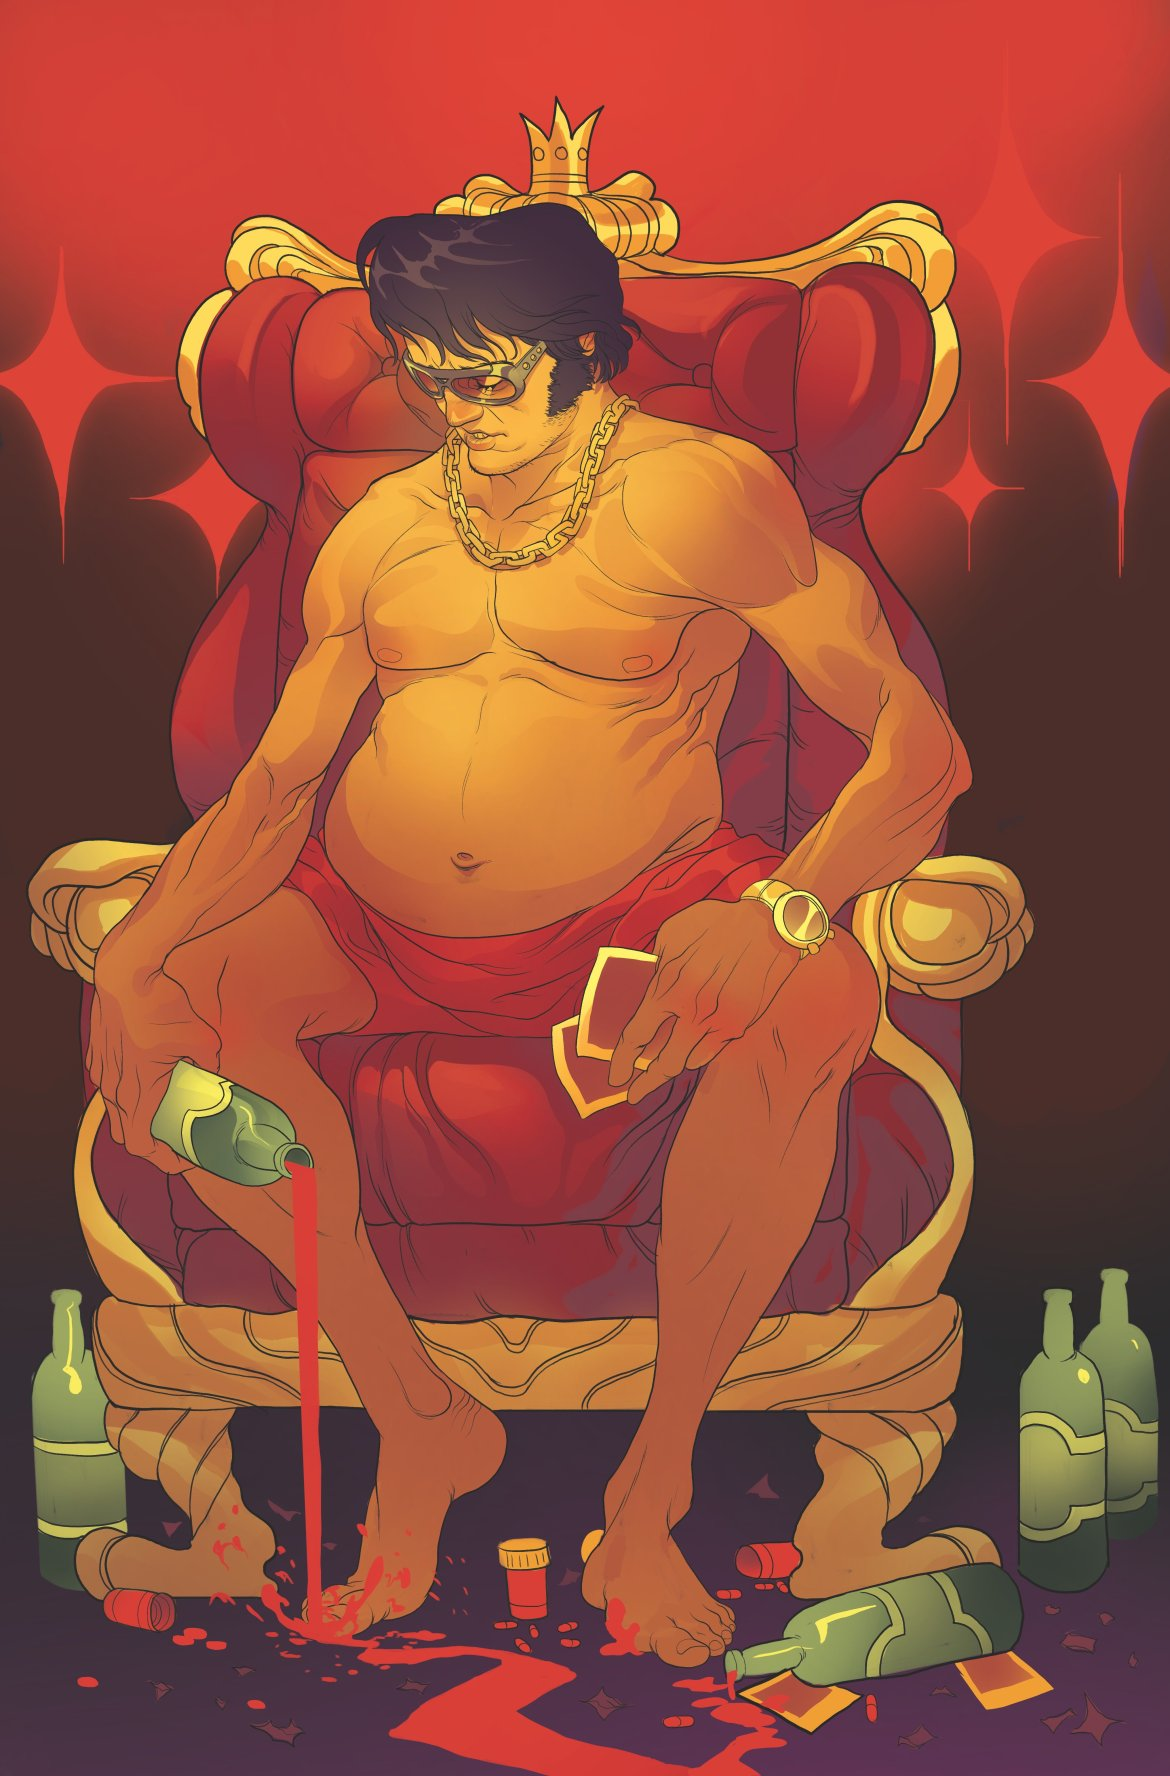 719056_bubba-ho-tep-cosmic-blood-suckers-1 ComicList: IDW Publishing New Releases for 05/16/2018